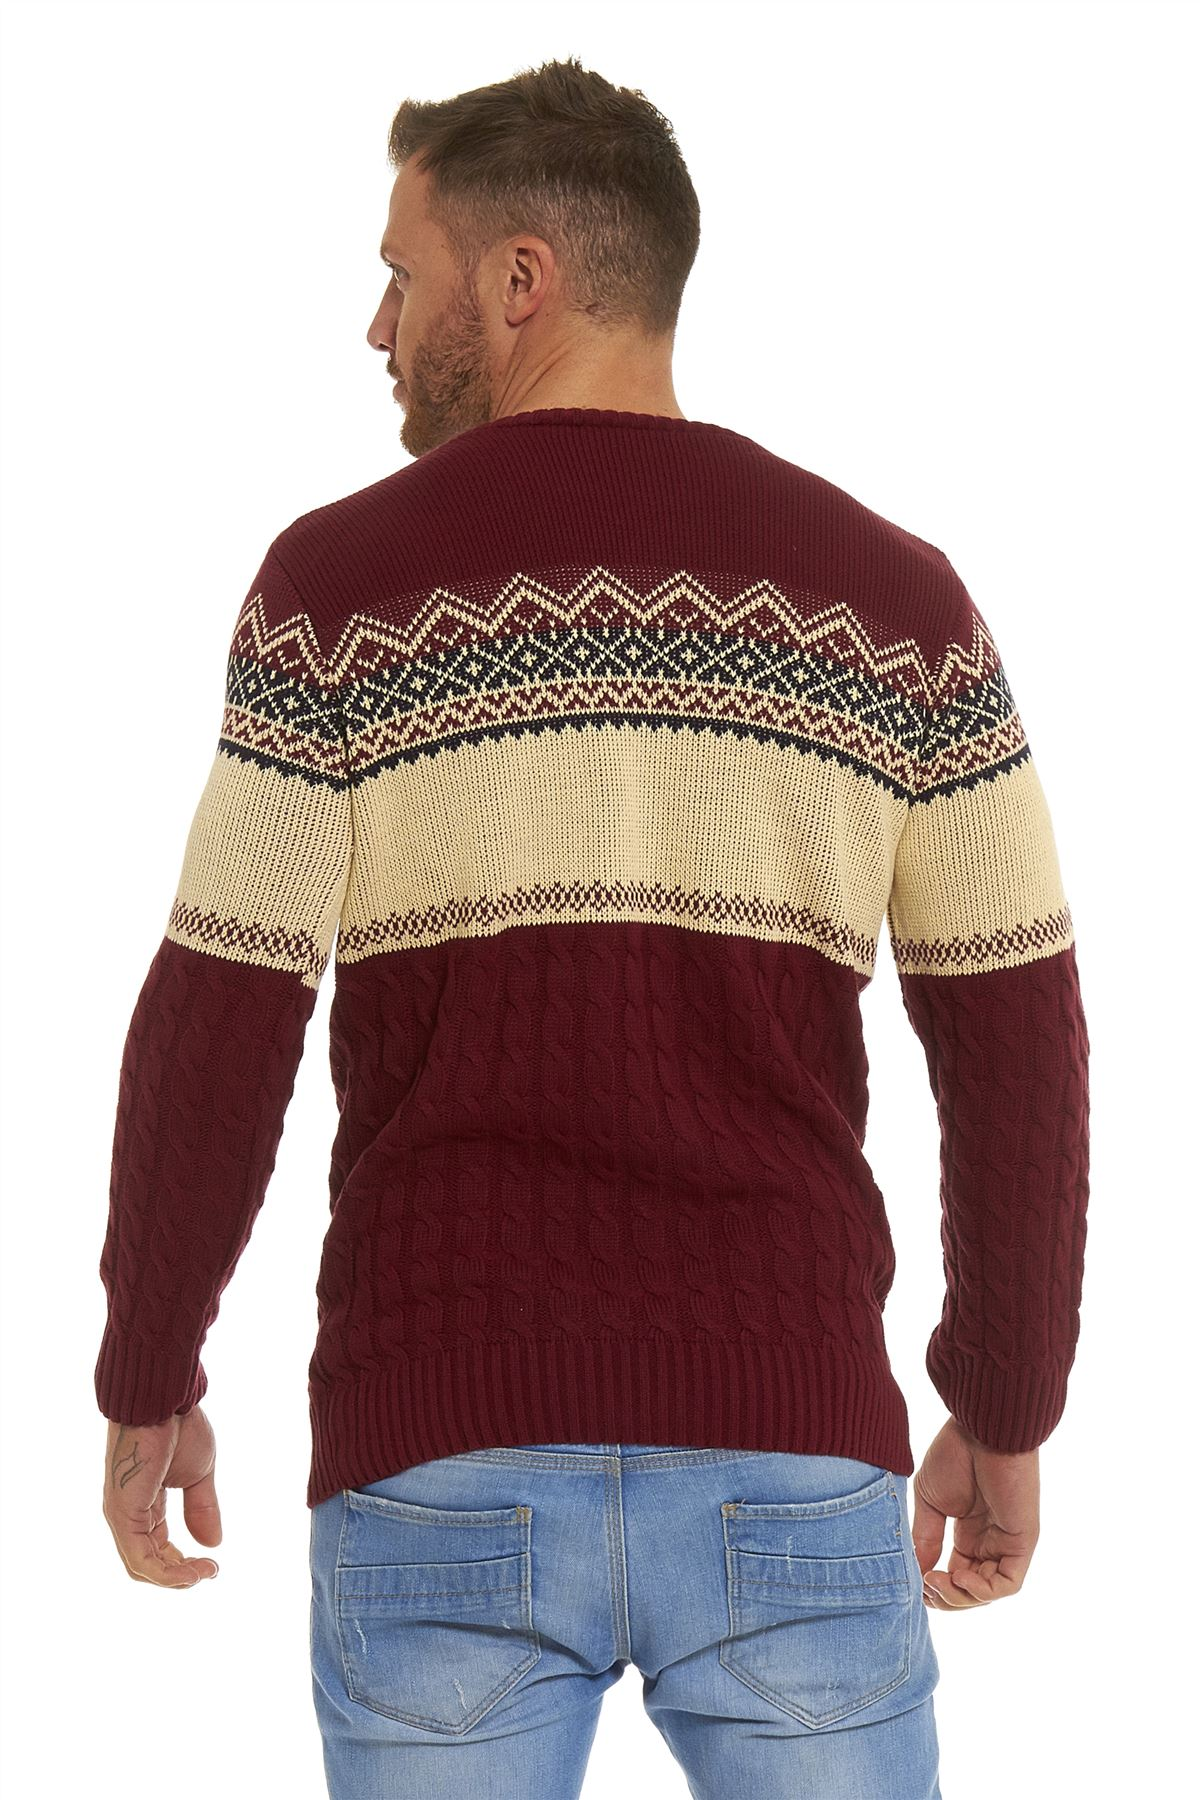 Mens novelty christmas sweaters